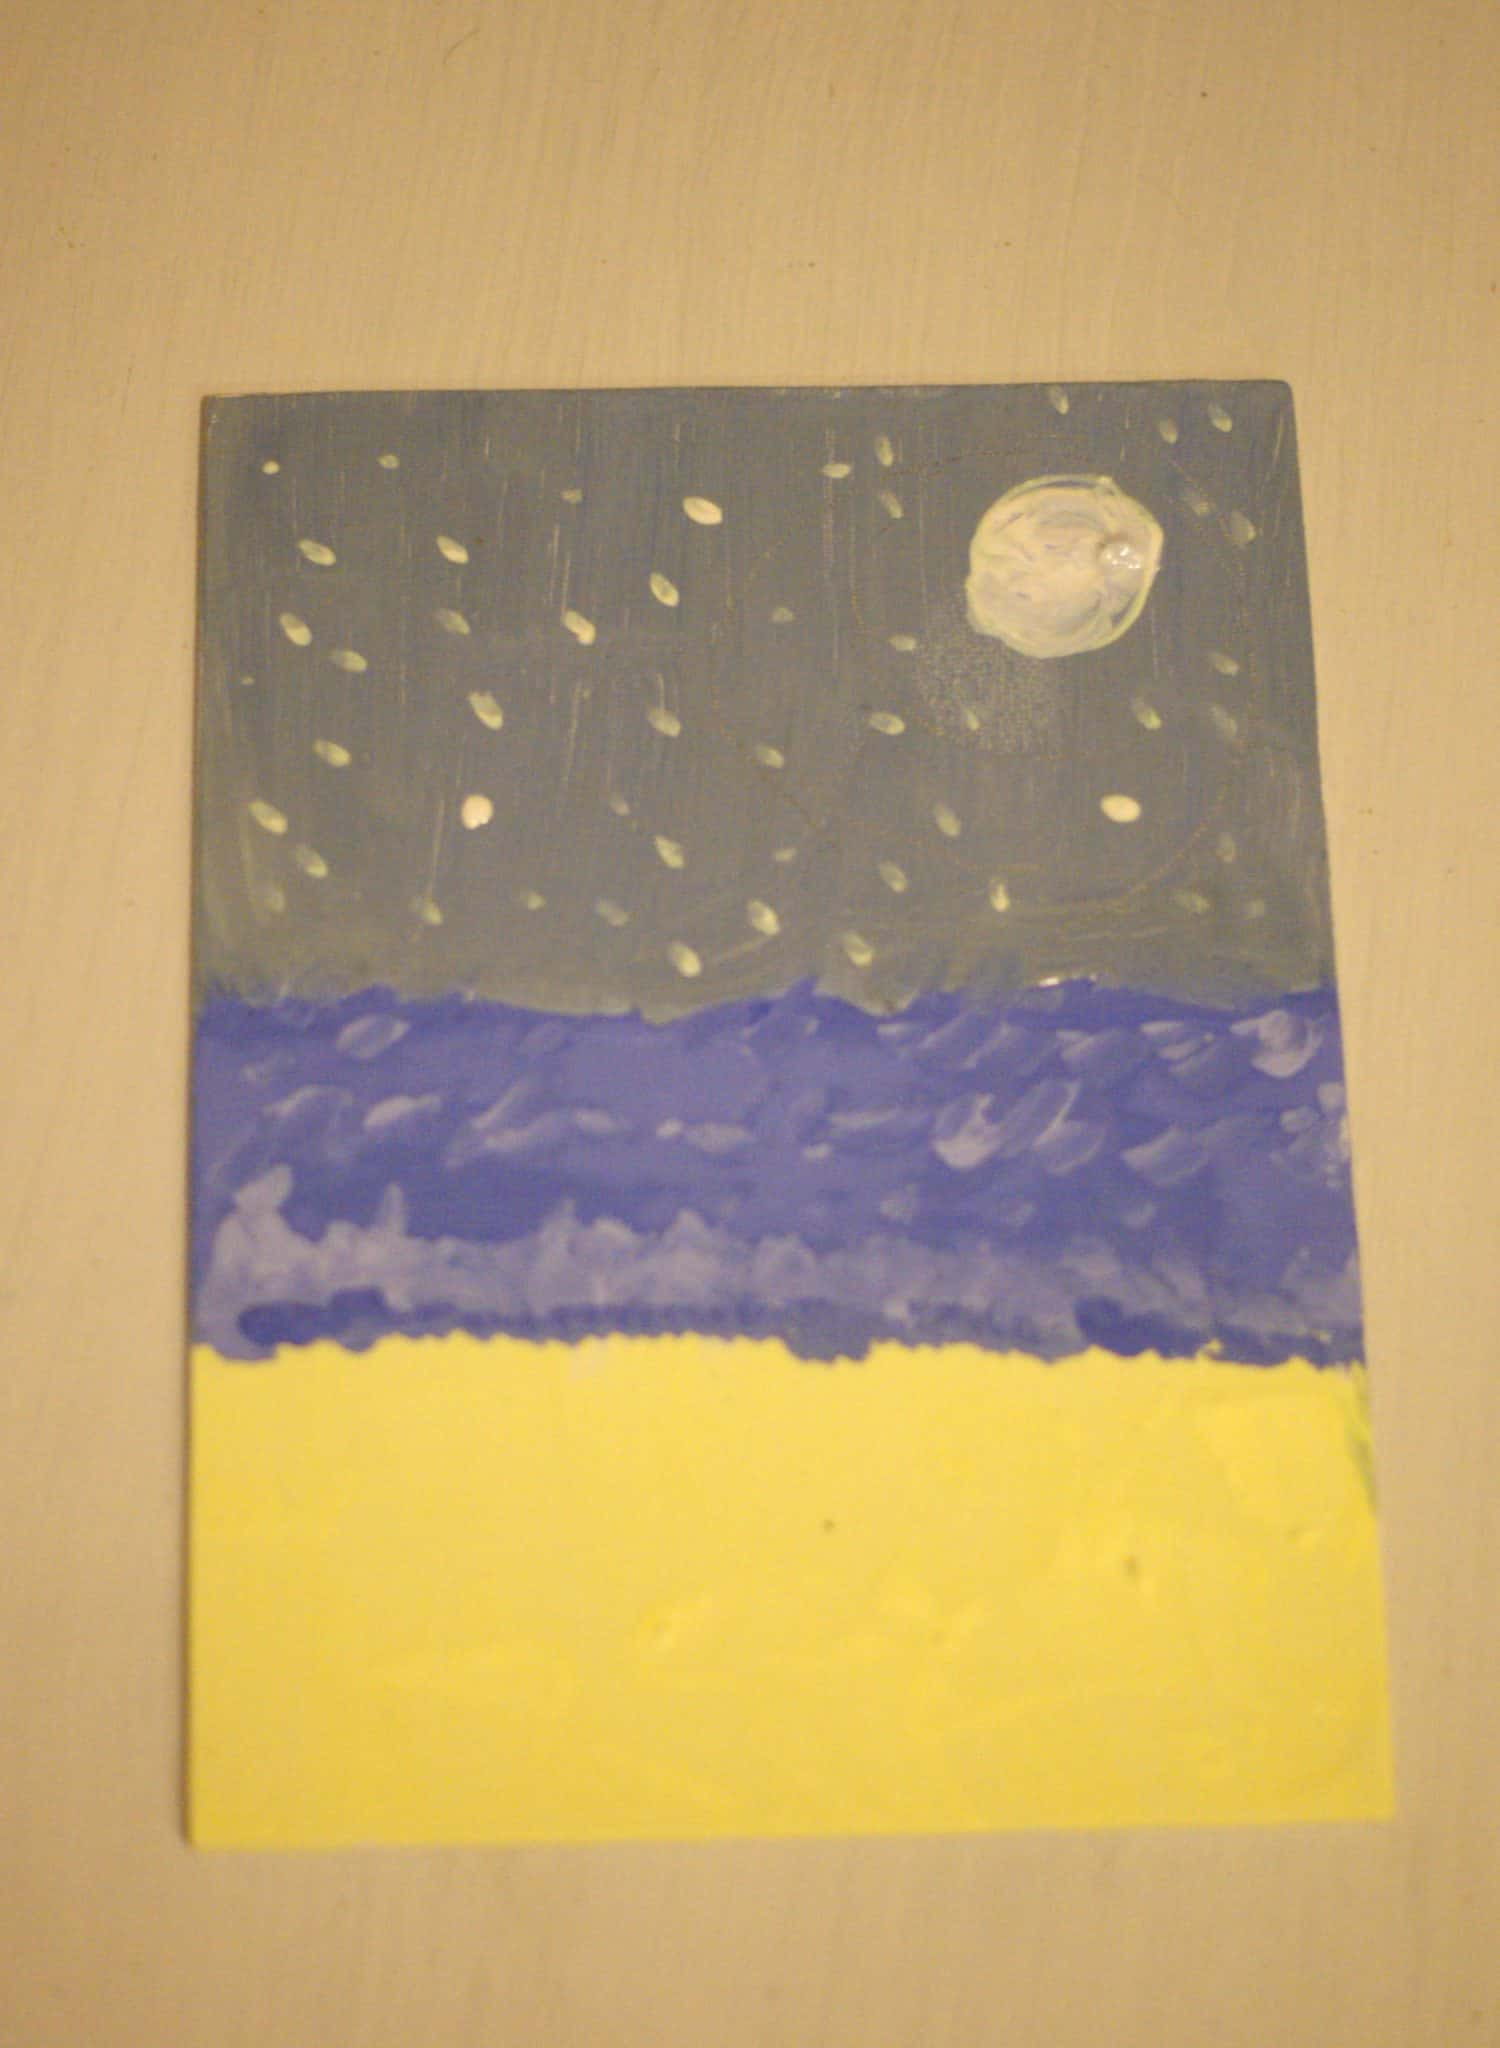 Sea Turtle Craft - Night Sky with moon and stars